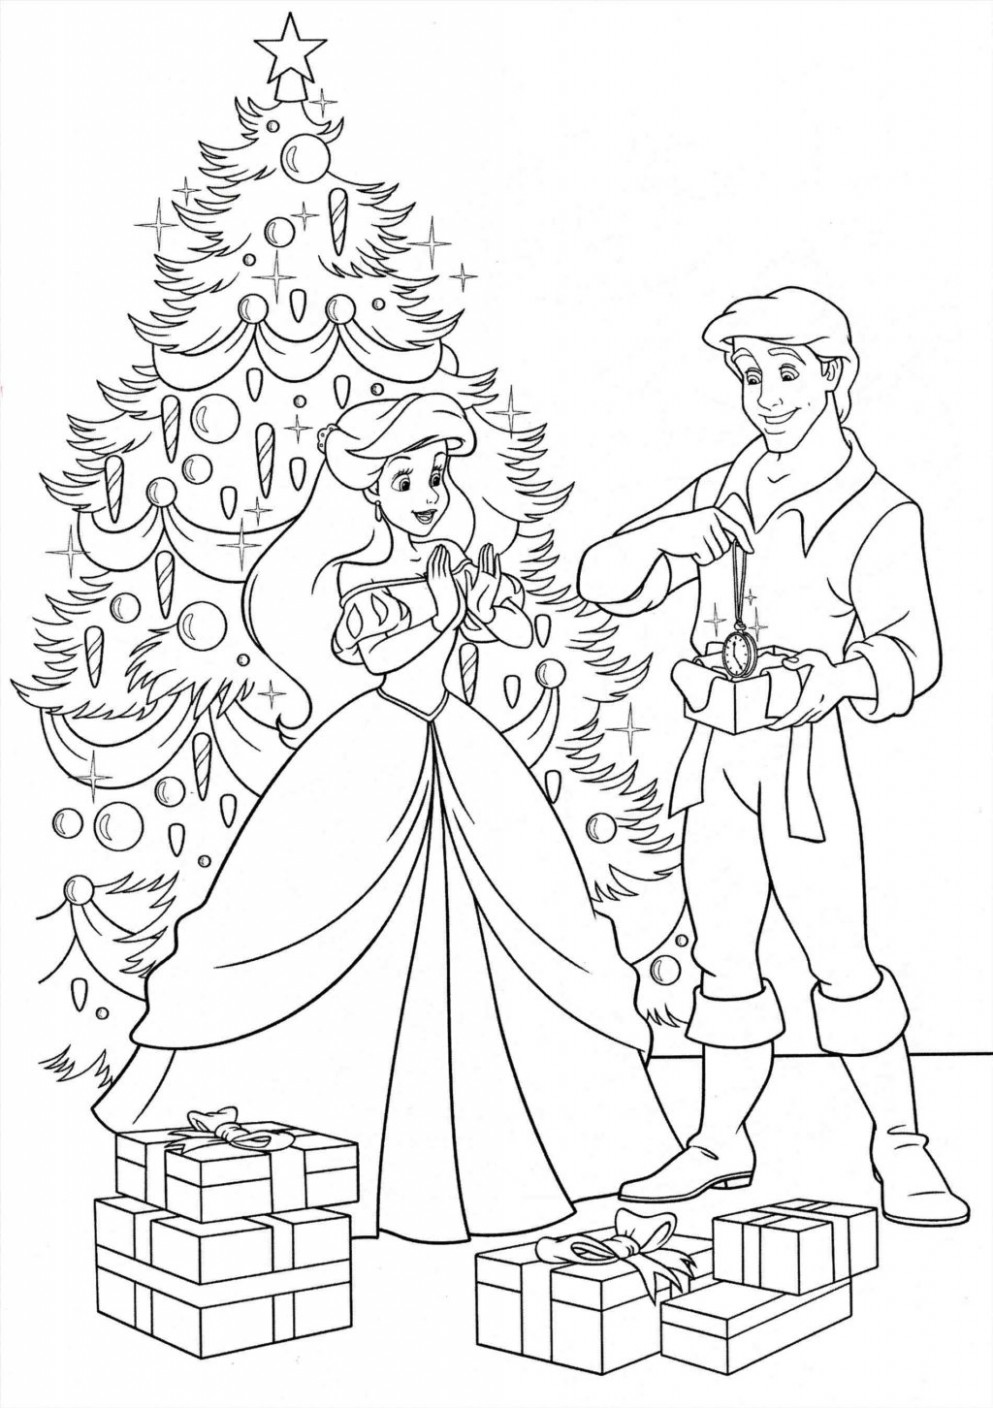 Coloring Book World ~ Free Disney Christmas Coloring Pages Printable ..